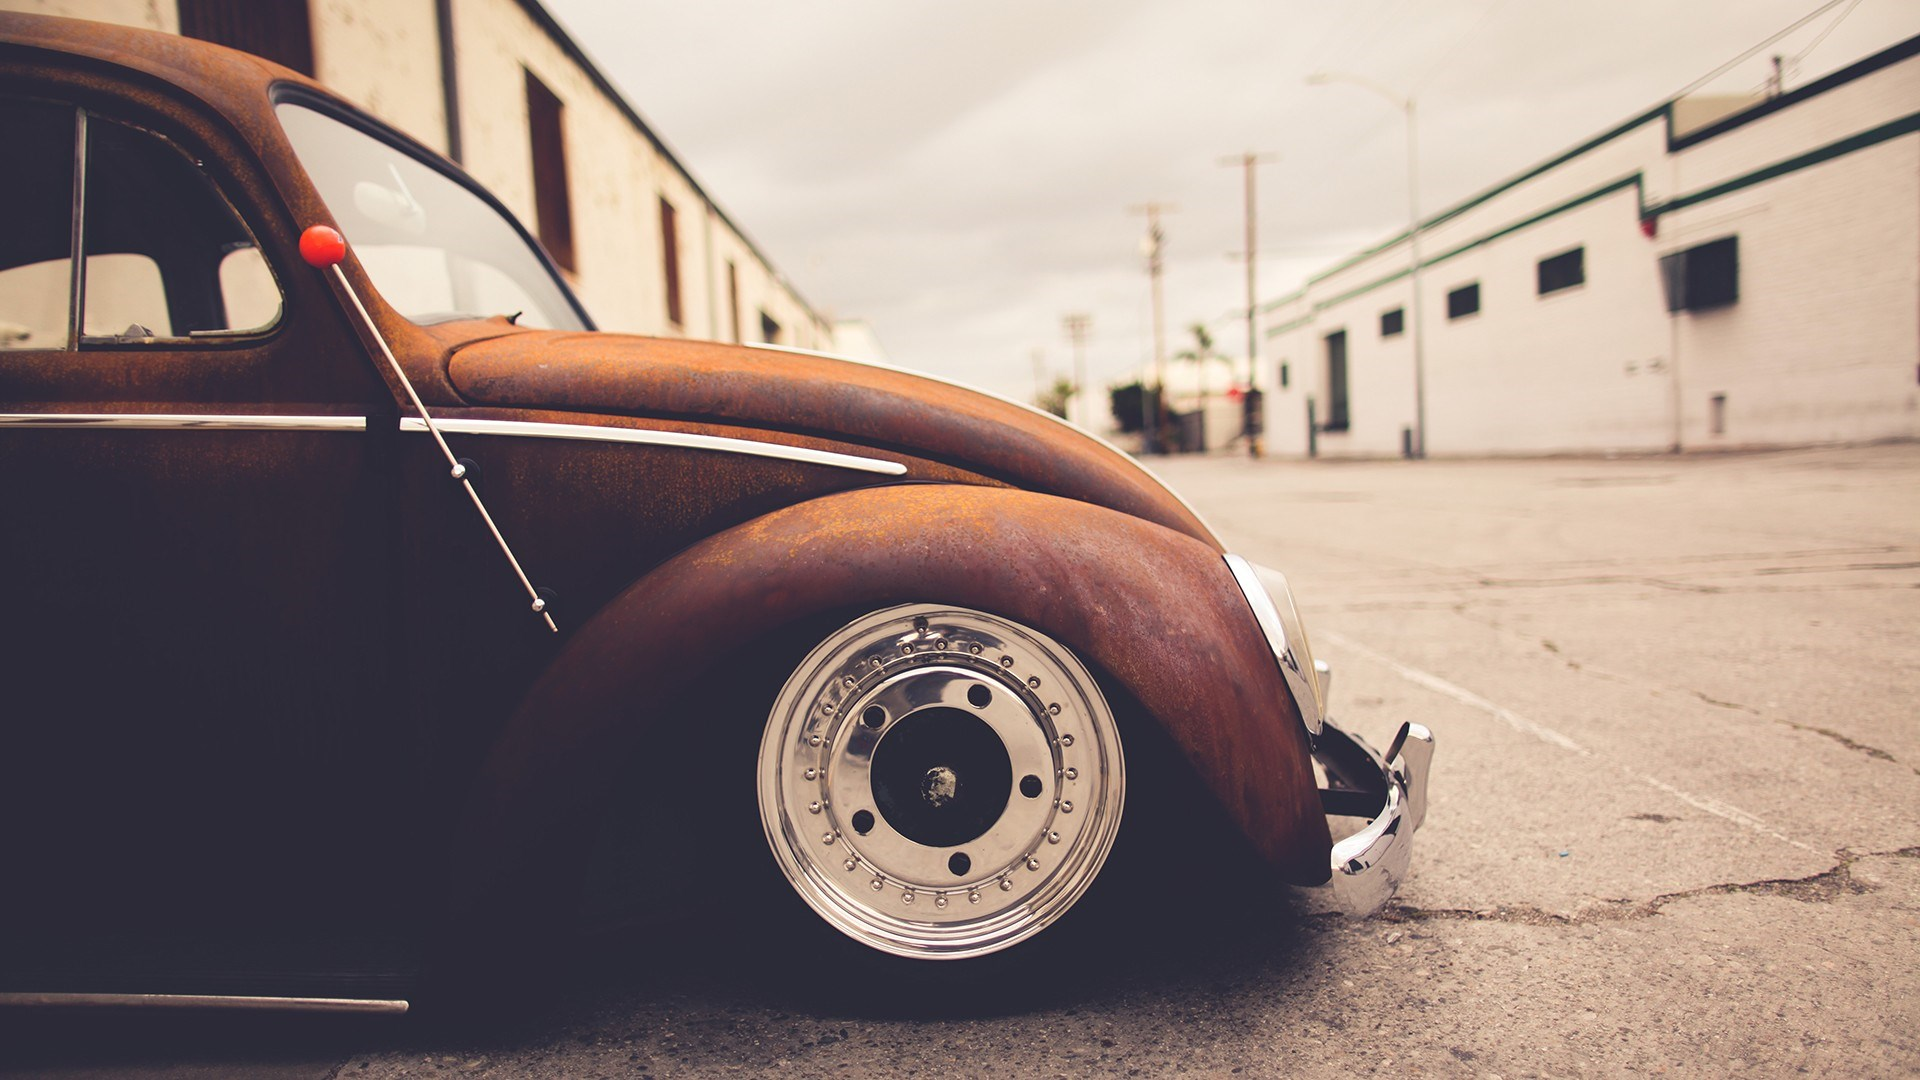 VW Volkswagen Beetle Bug wallpaper in Transportation wallpapers 1920x1080